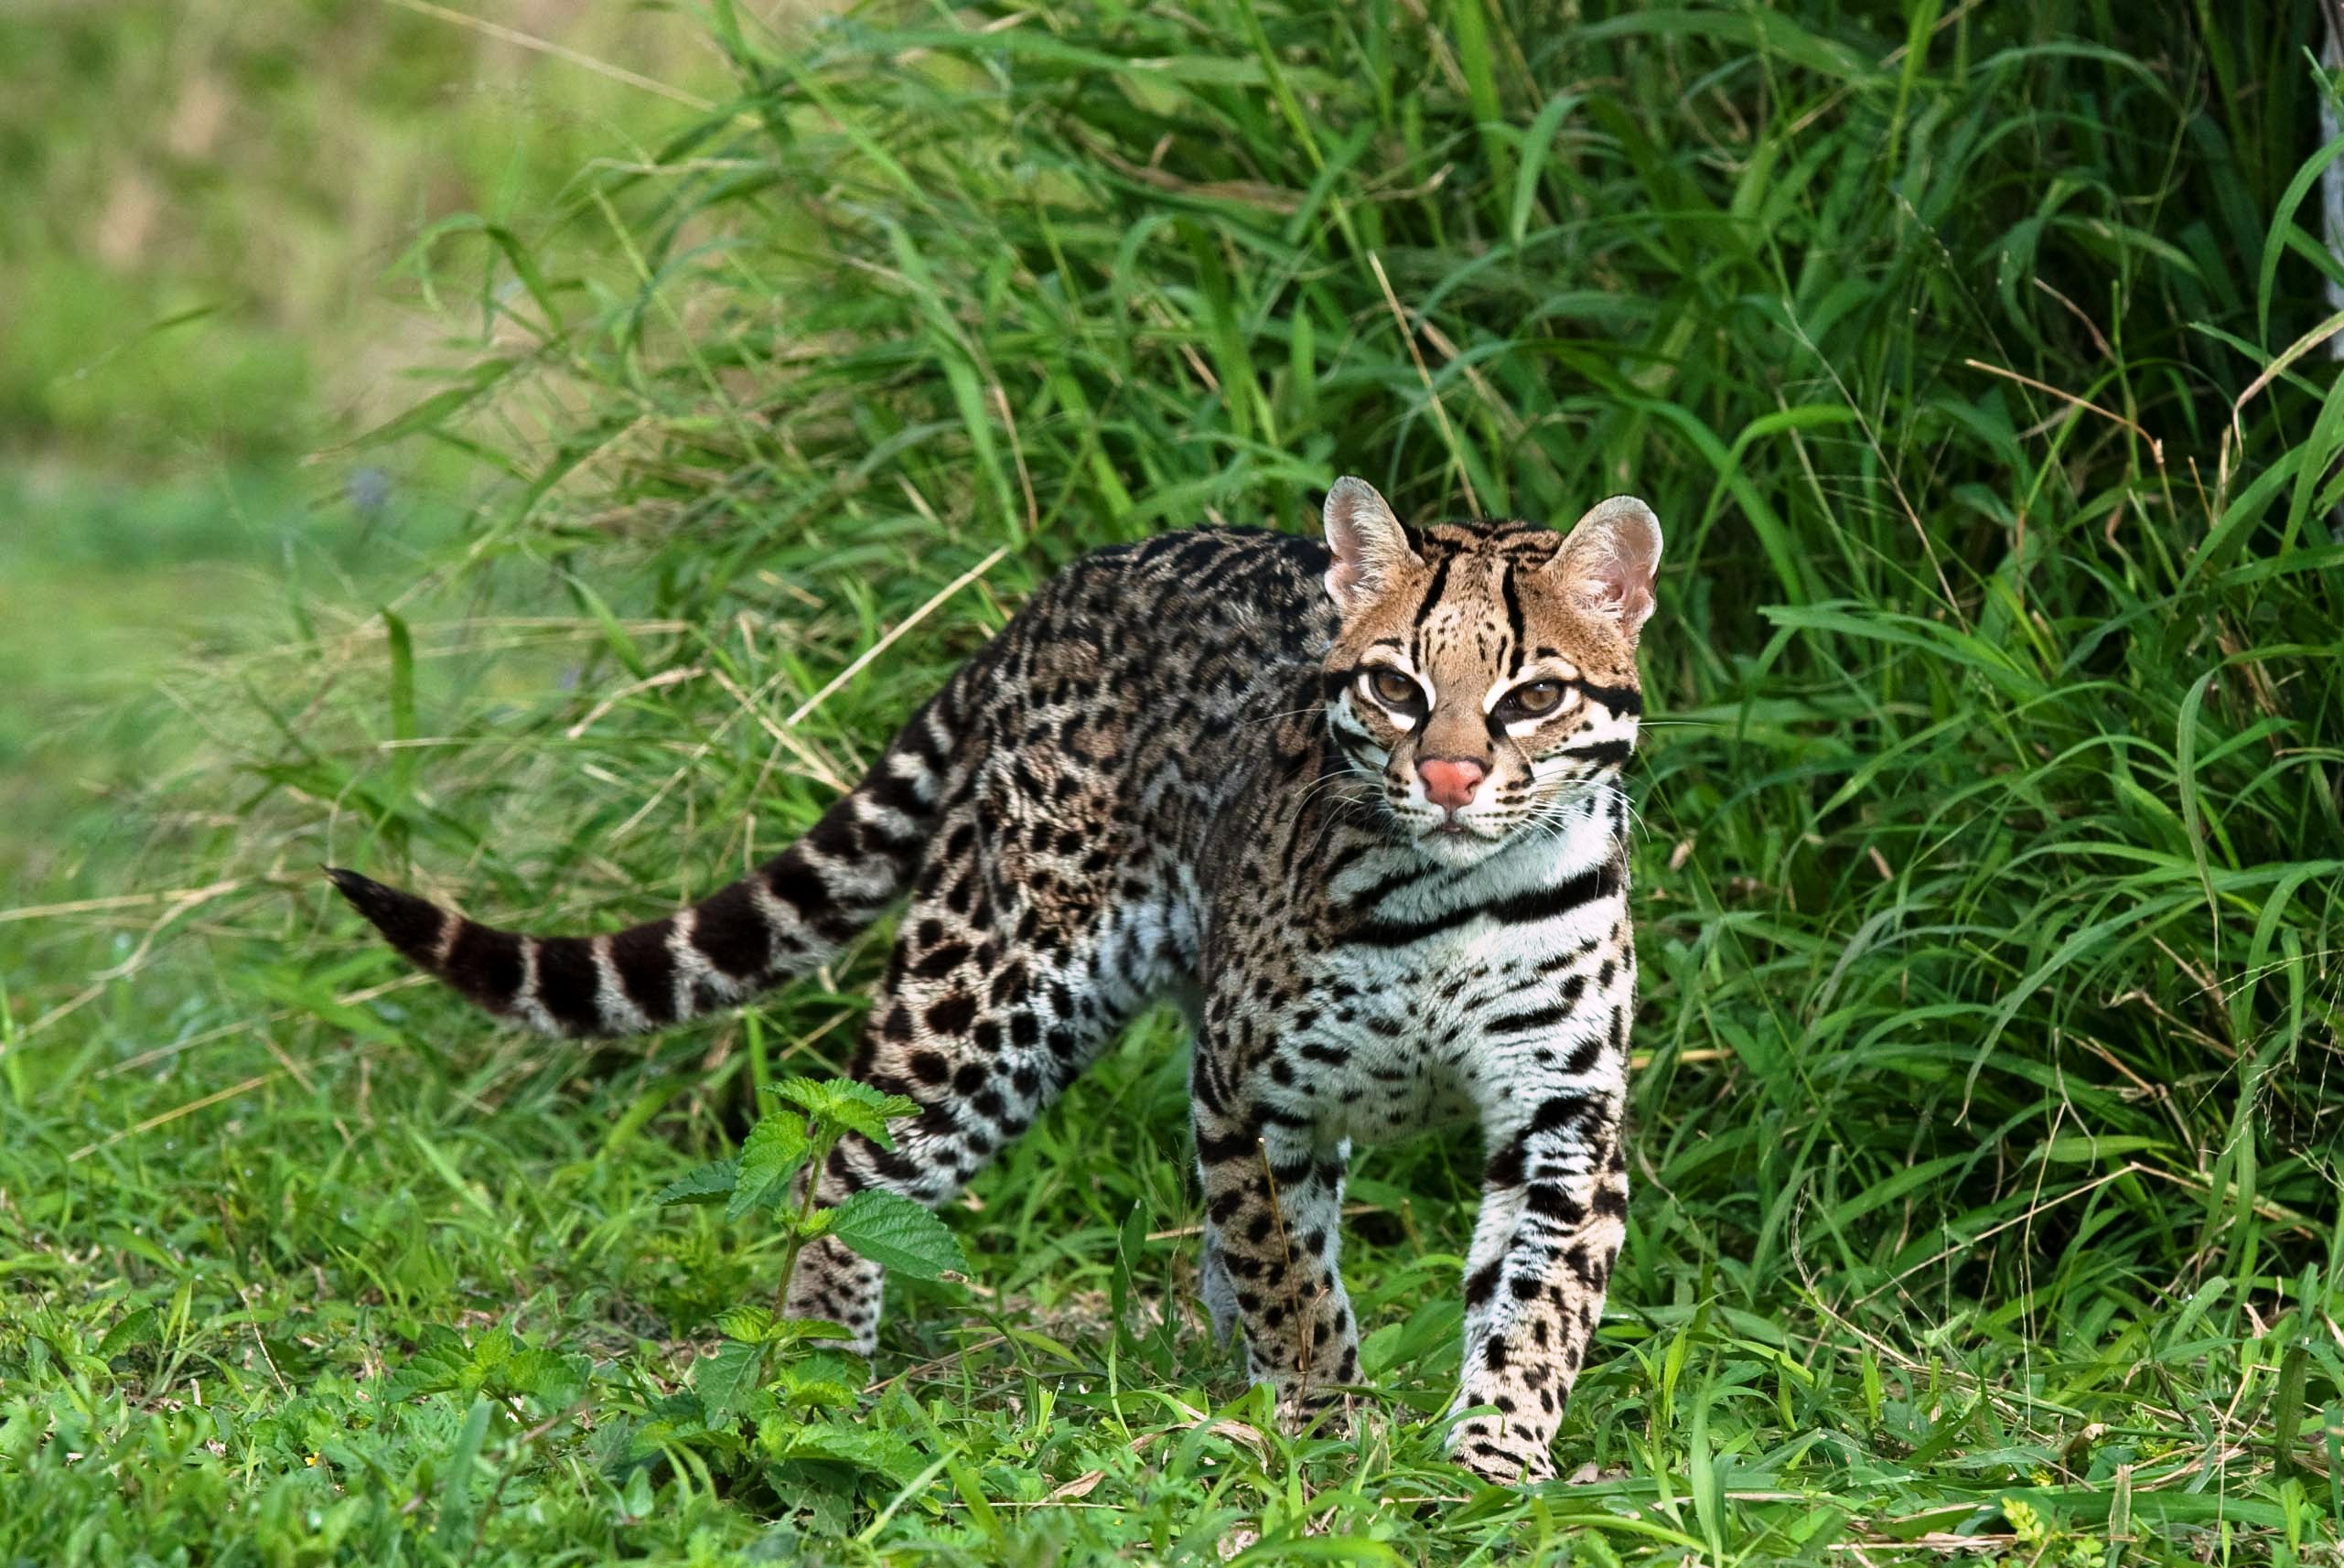 Ocelot Hd Wallpaper